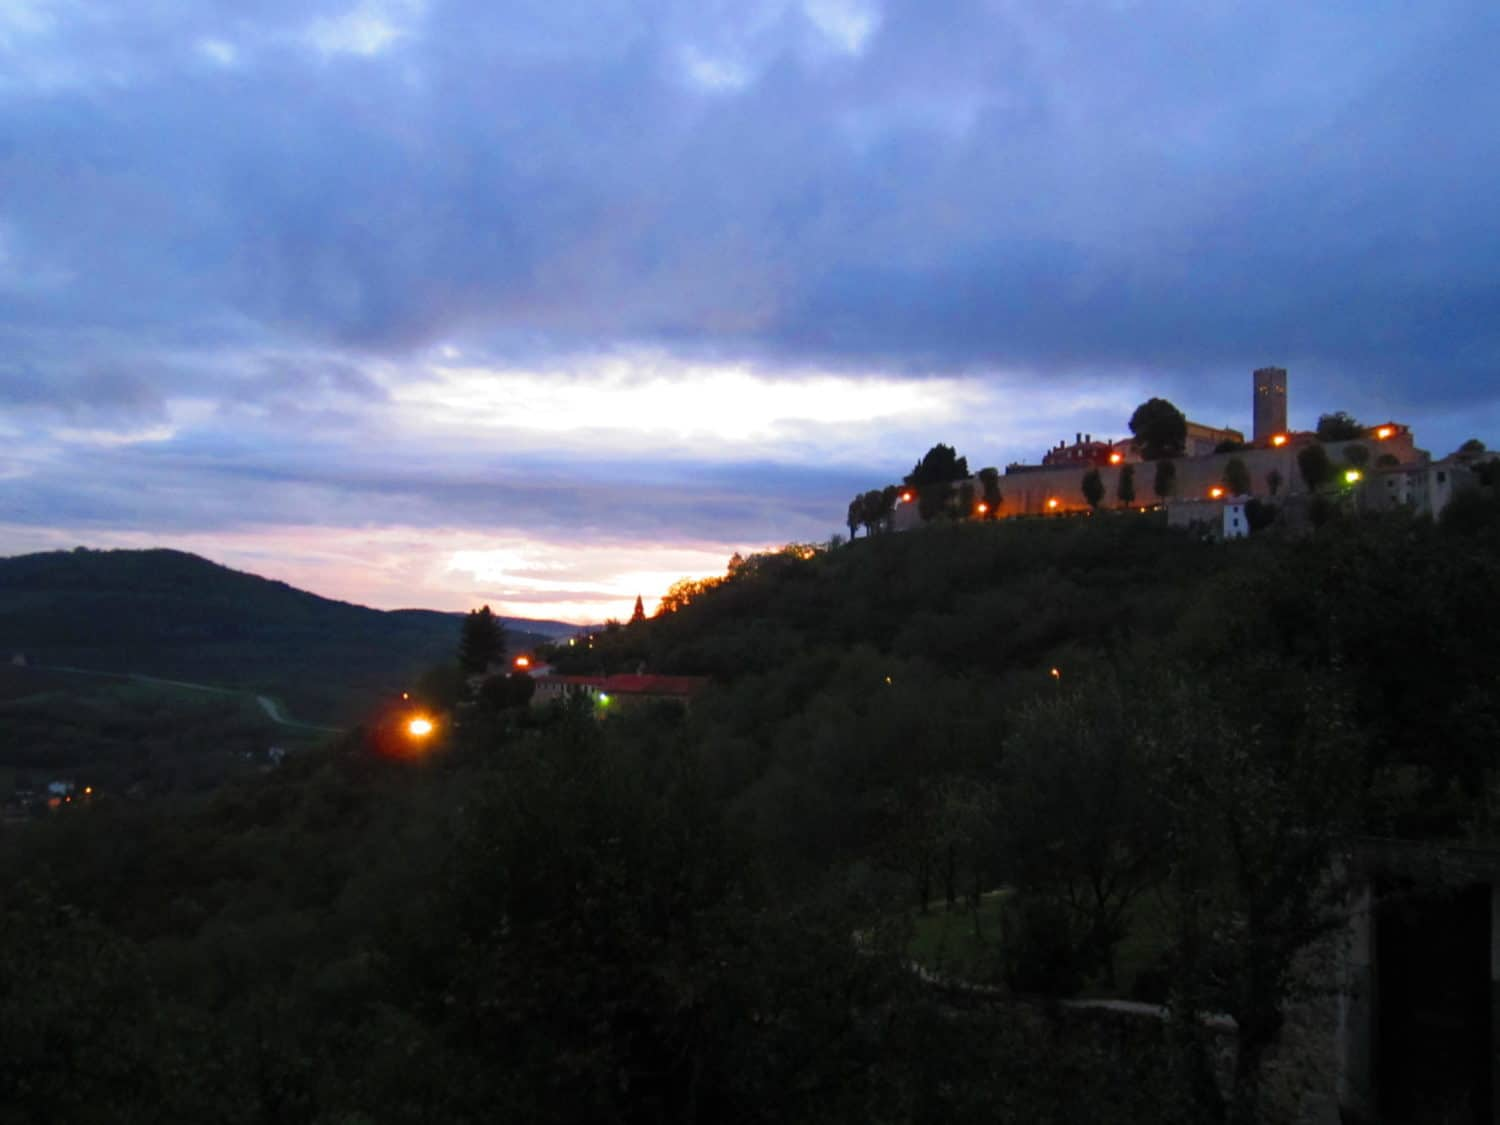 Twilight looking back at Motovun. A visit to this town is a must-do in northern Croatia!